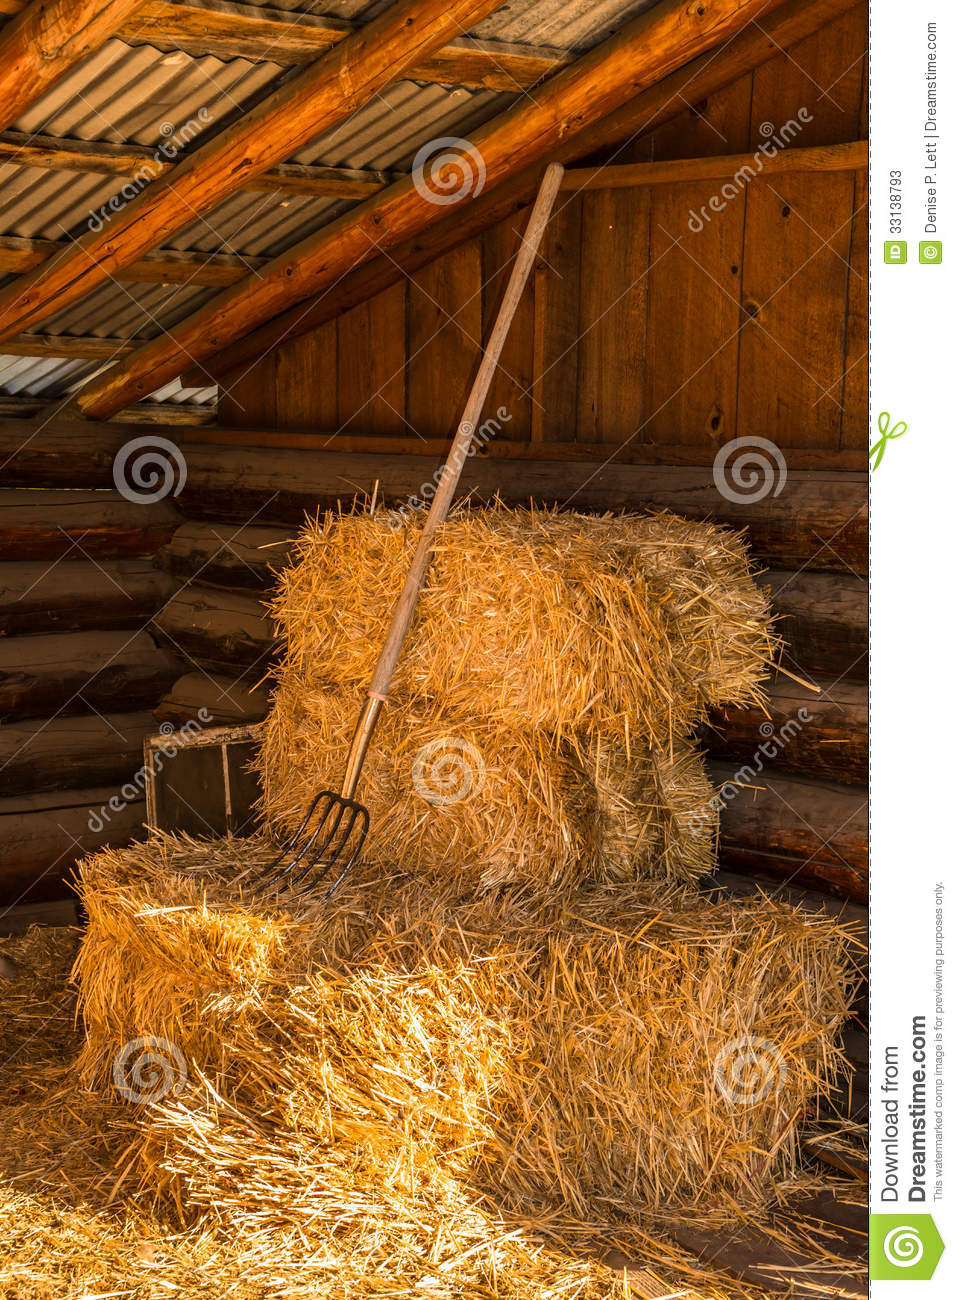 Bales Of Straw Hay With Pitchfork In Barn